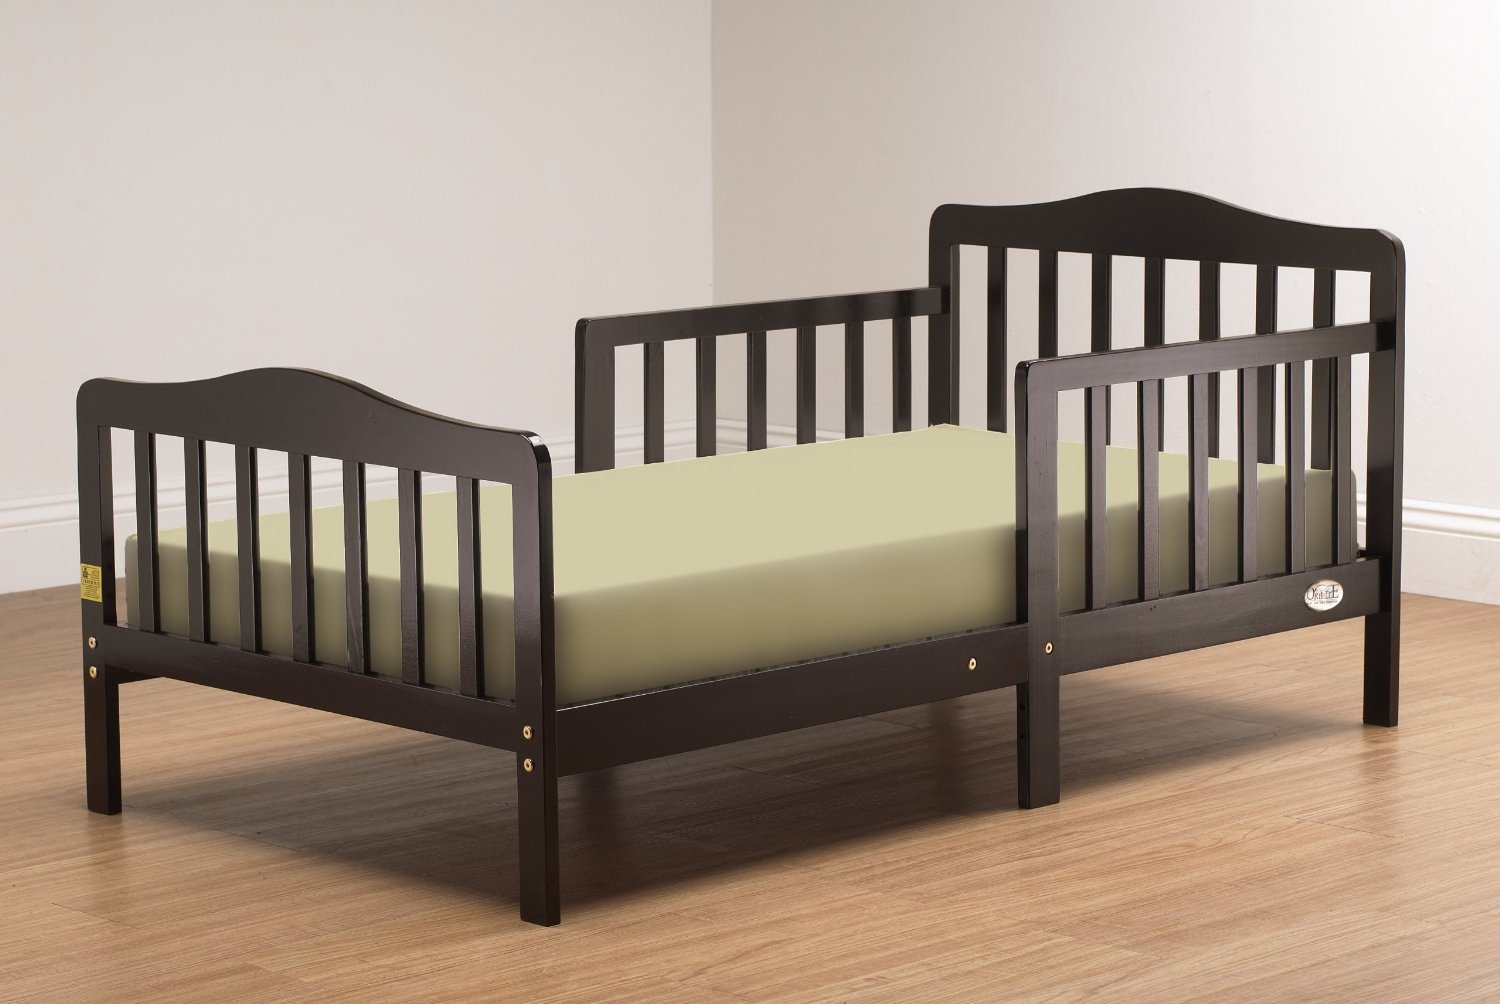 Children Bed Toddler Solid Wood with Rails Kid Size Bedding Frame Espresso Child Bed for Toddlers